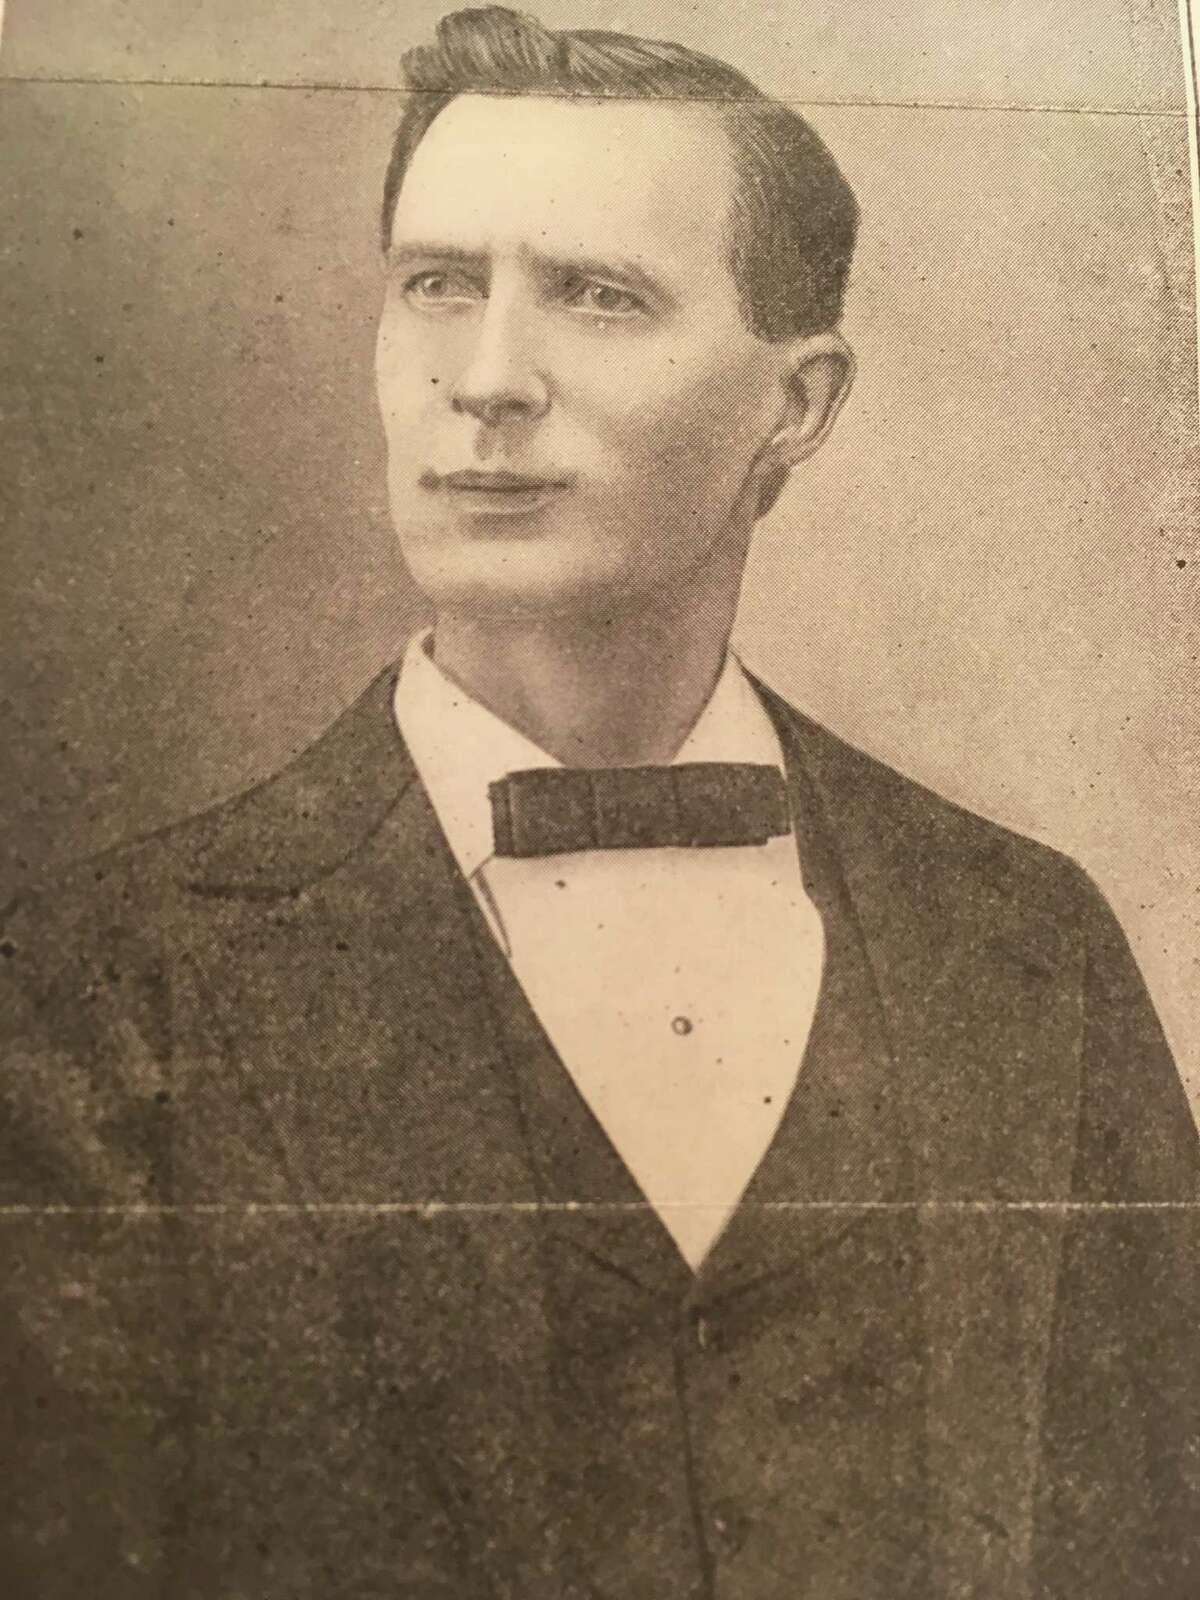 Baylor's rape scandal isn't the schools first. In the 1890s, W.C. Brann, a colorful and edgy writer in Waco - and former San Antonio Express editor - learned the school had imported teenage girls to be missionaries, but in fact had gotten one pregnant. His fiery commentary angered locals. He escaped a lynch mob, but couldn't escape a gunman who shot him in broad daylight in downtown Waco.